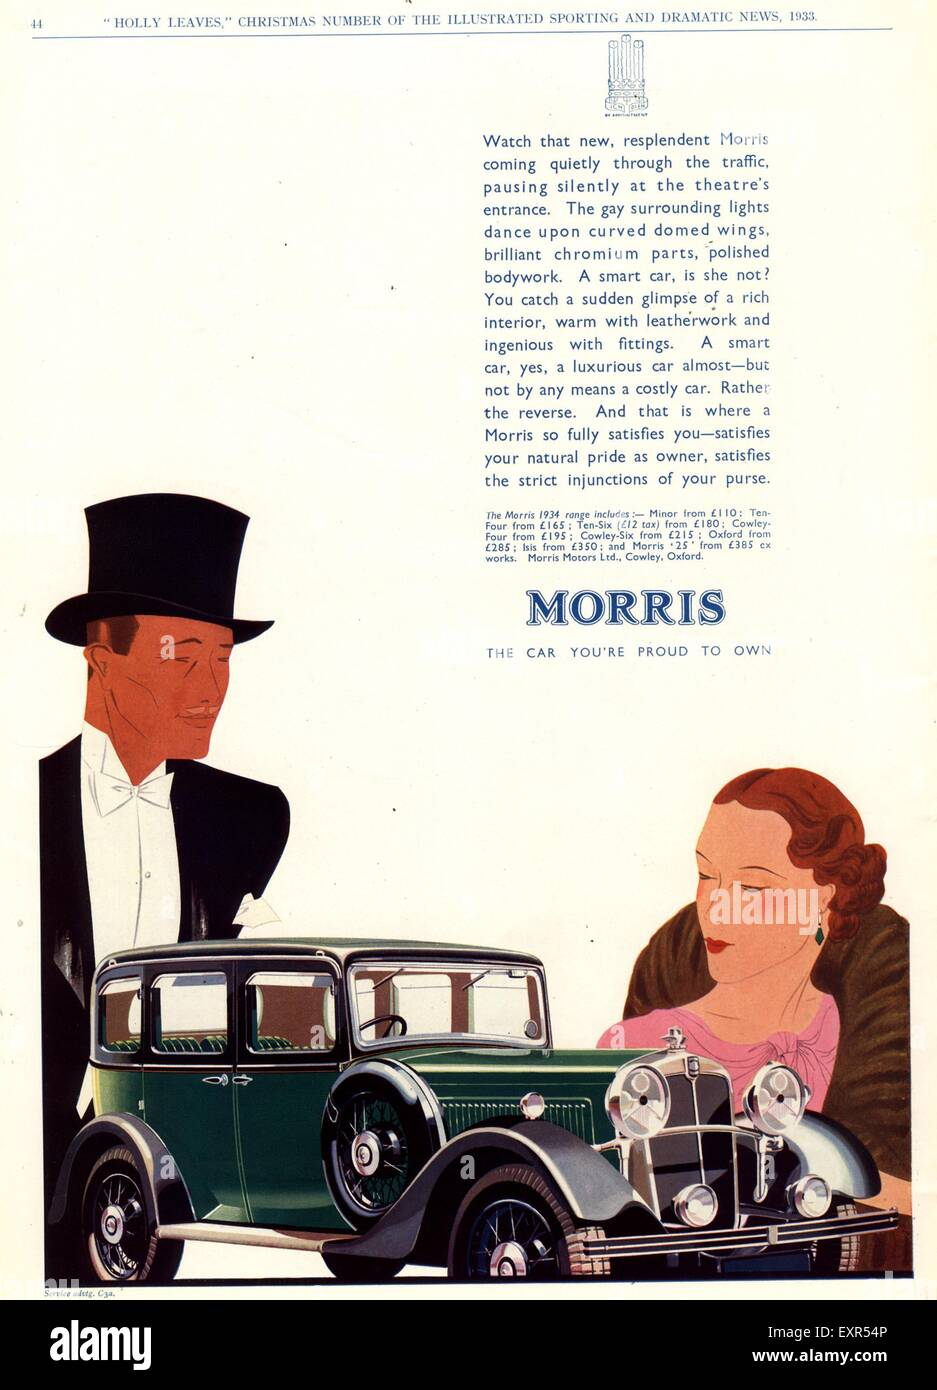 1930s UK Morris Cars Magazine Advert Stock Photo: 85331478 - Alamy